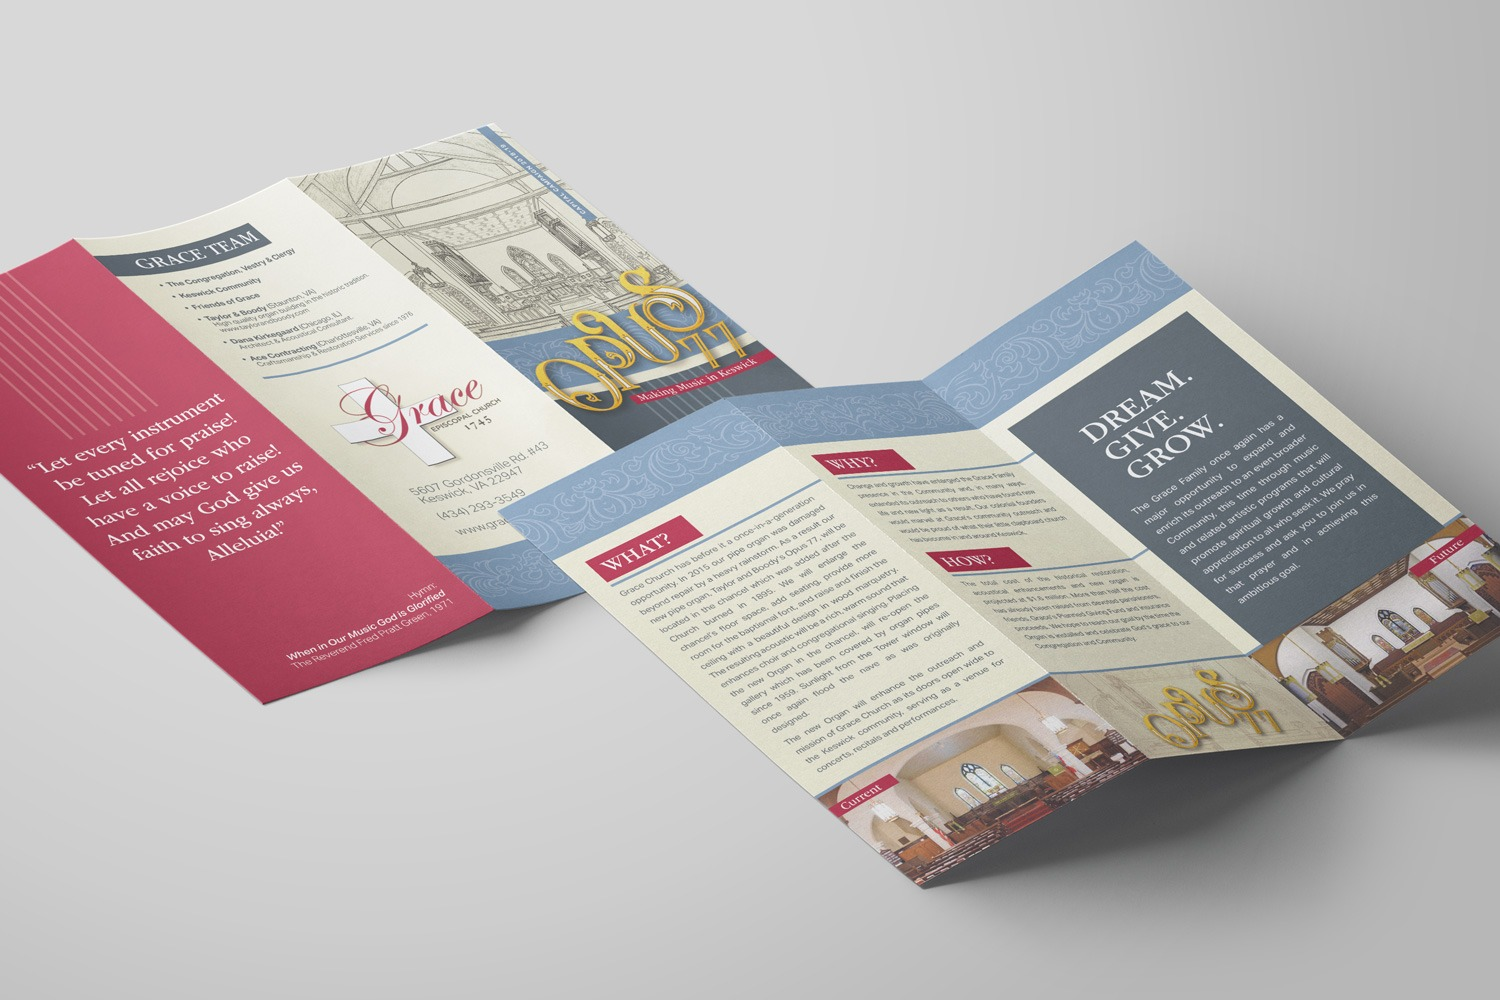 Church Capital Stewardship Campaign Brochures Design Examples & Ideas for Materials